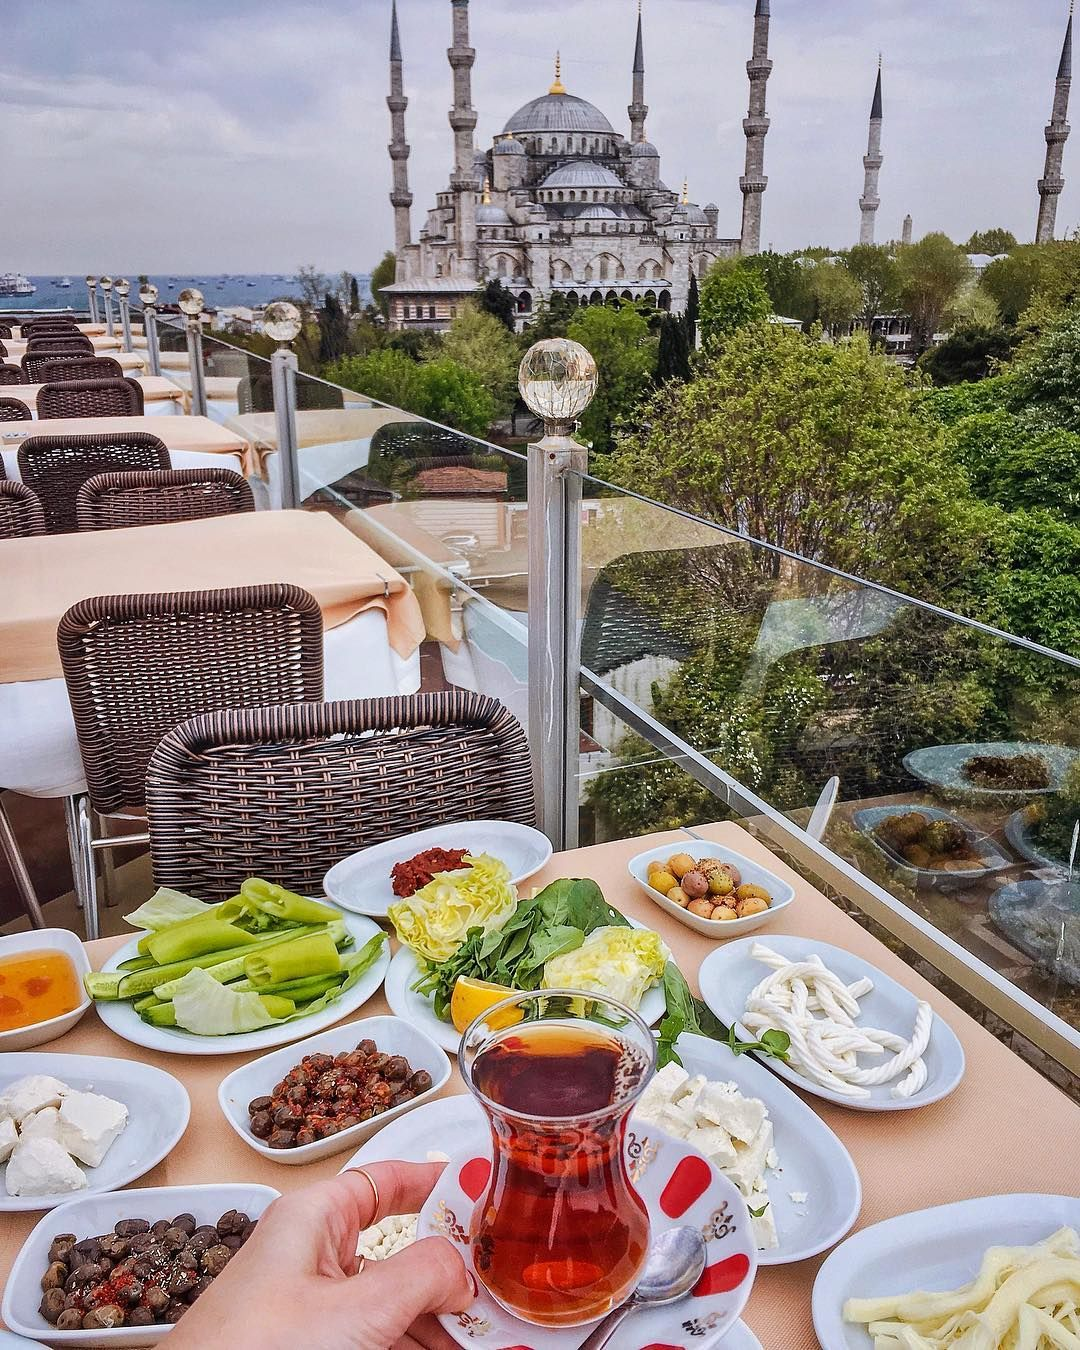 3 462 Begenme 90 Yorum Instagram Da Viktoriya Sener Tiebowtie Dreaming About Weekend And T Turkish Breakfast Breakfast Around The World Turkish Recipes